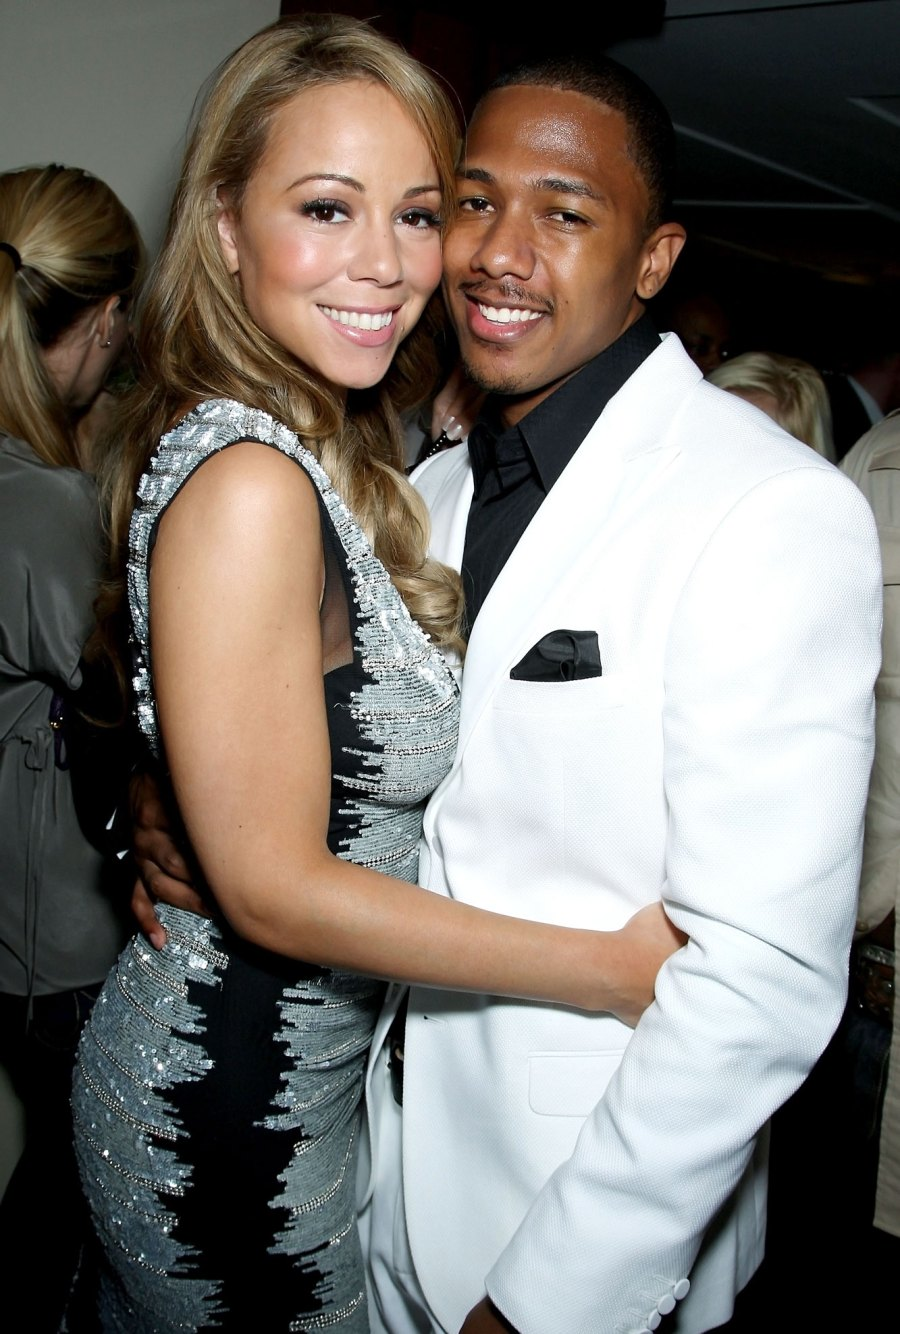 Mariah Carey Nick Cannon The Way They Were